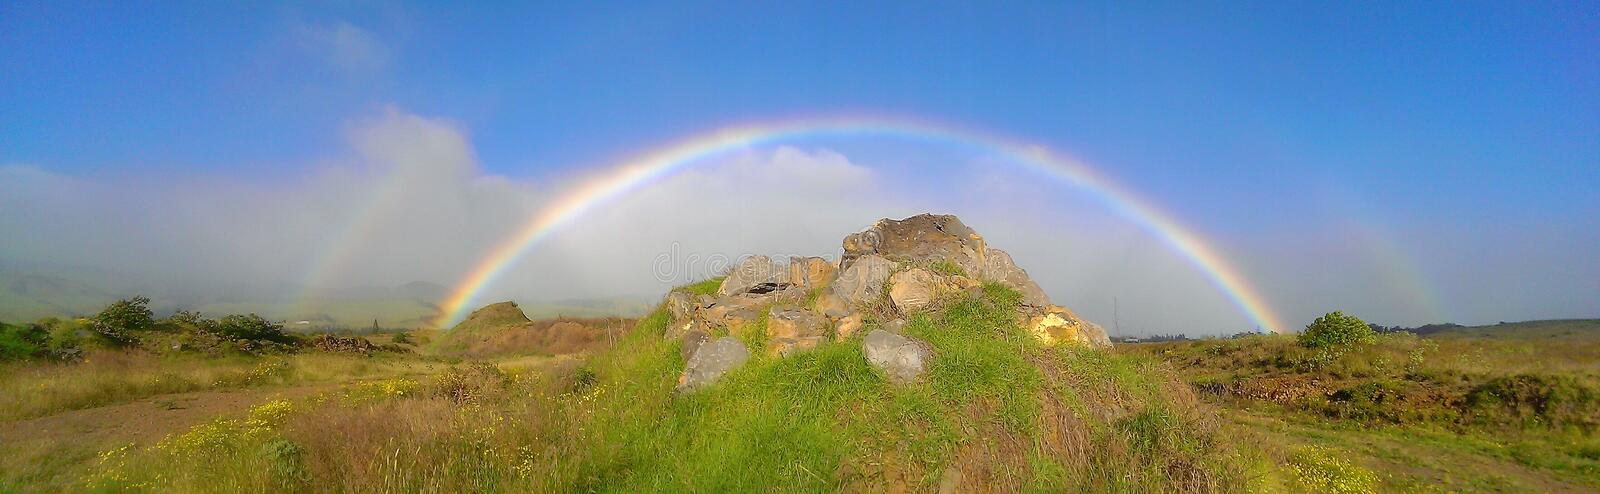 Hawaii rainbow over a rock pile in open field. Rainbow in Waimea Hawaii over a rock pile in an open field royalty free stock image